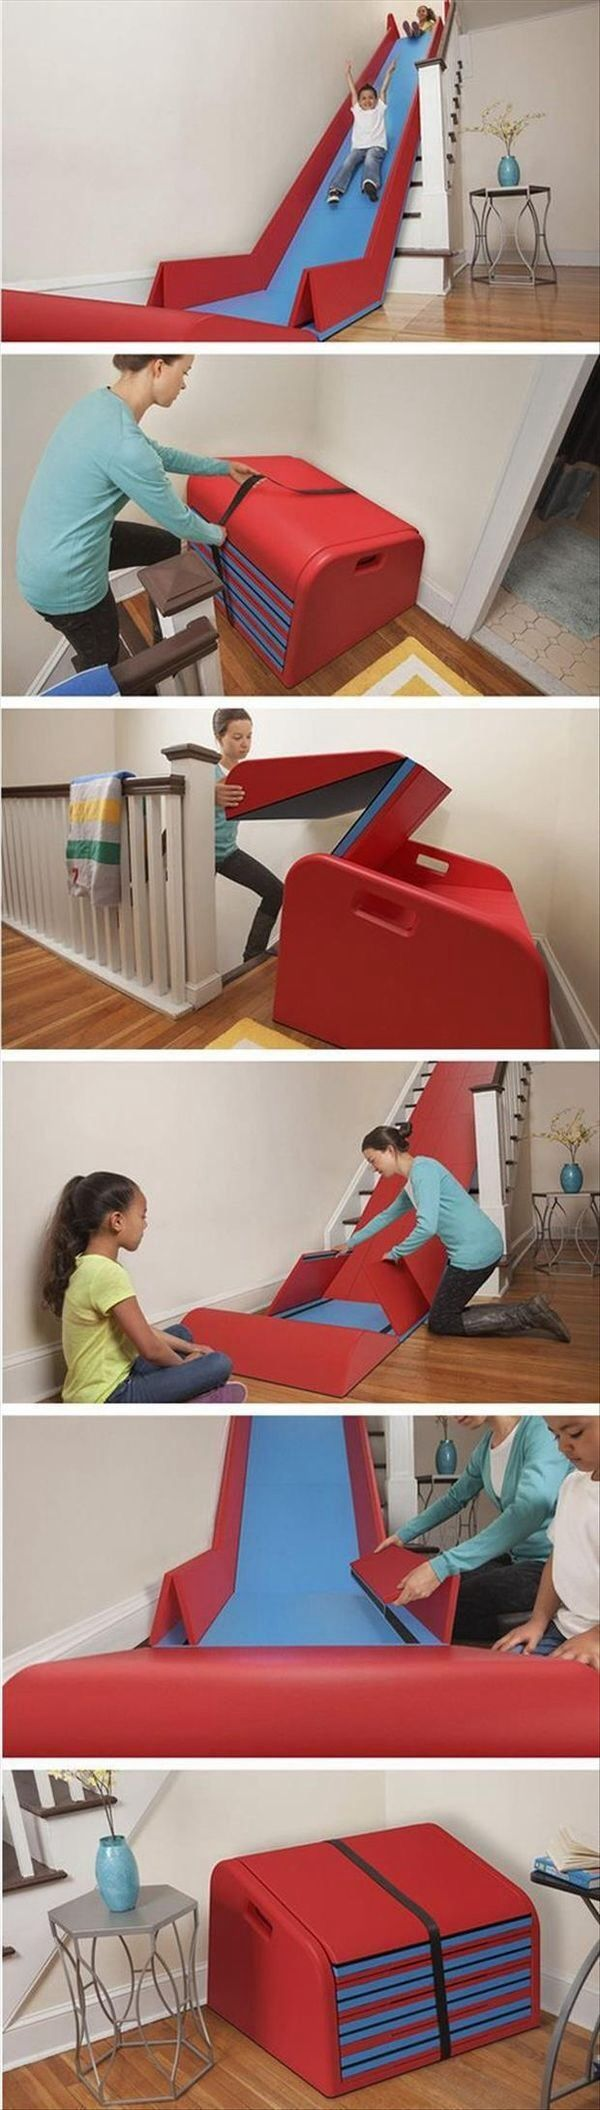 Awesome thing for kids